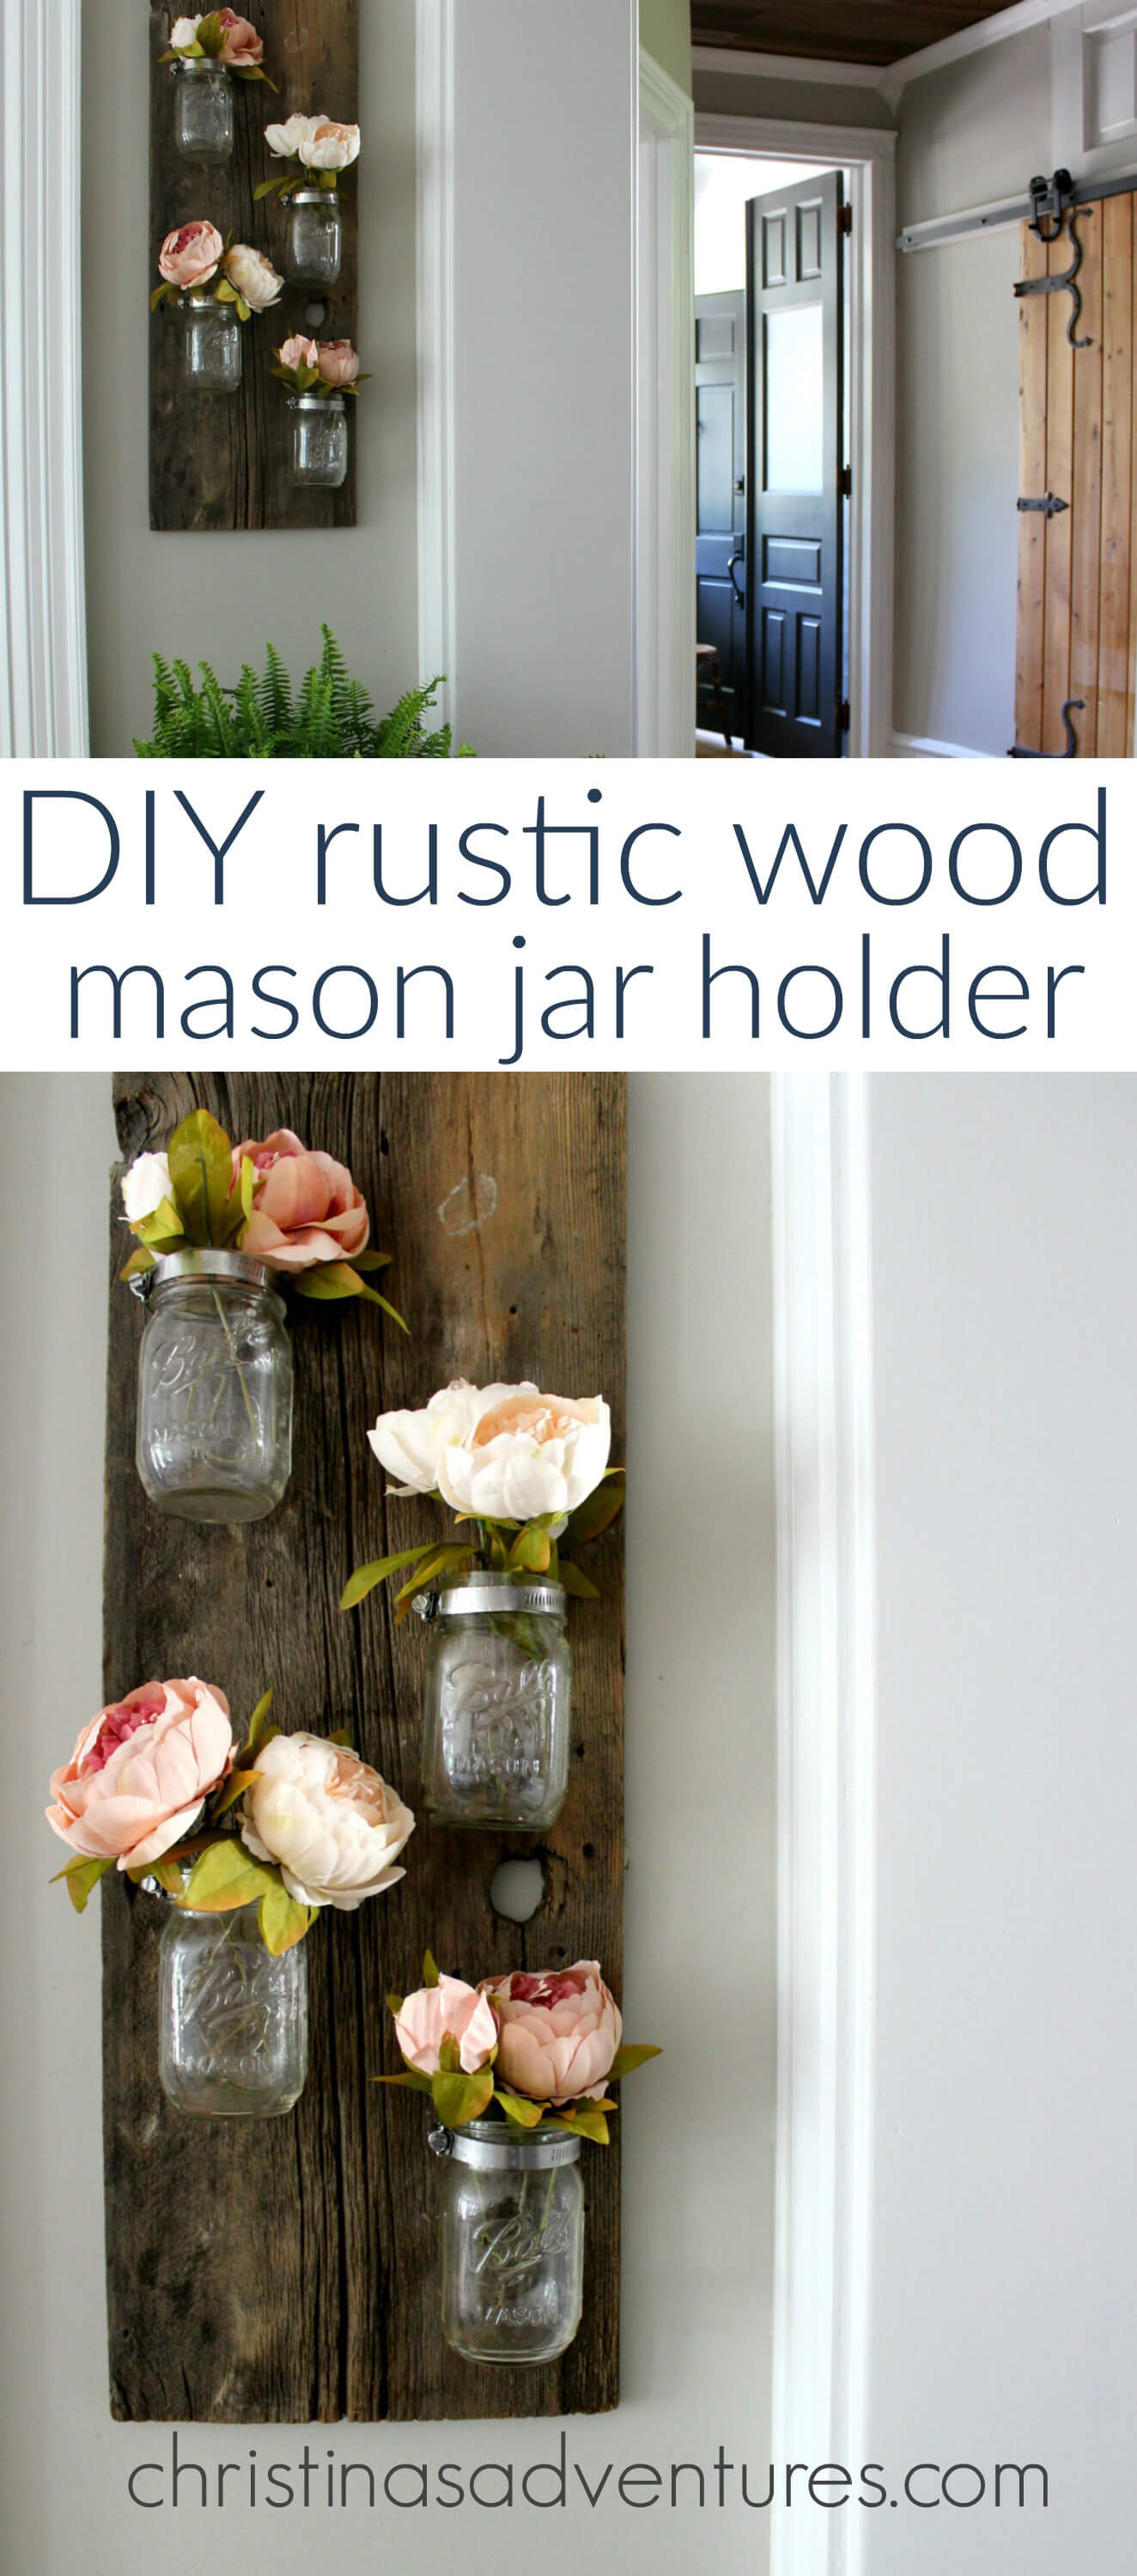 Rustic Vertical Vase Mason Jar Wall Art & Rustic Vertical Vase Mason Jar Wall Art u2014 Homebnc